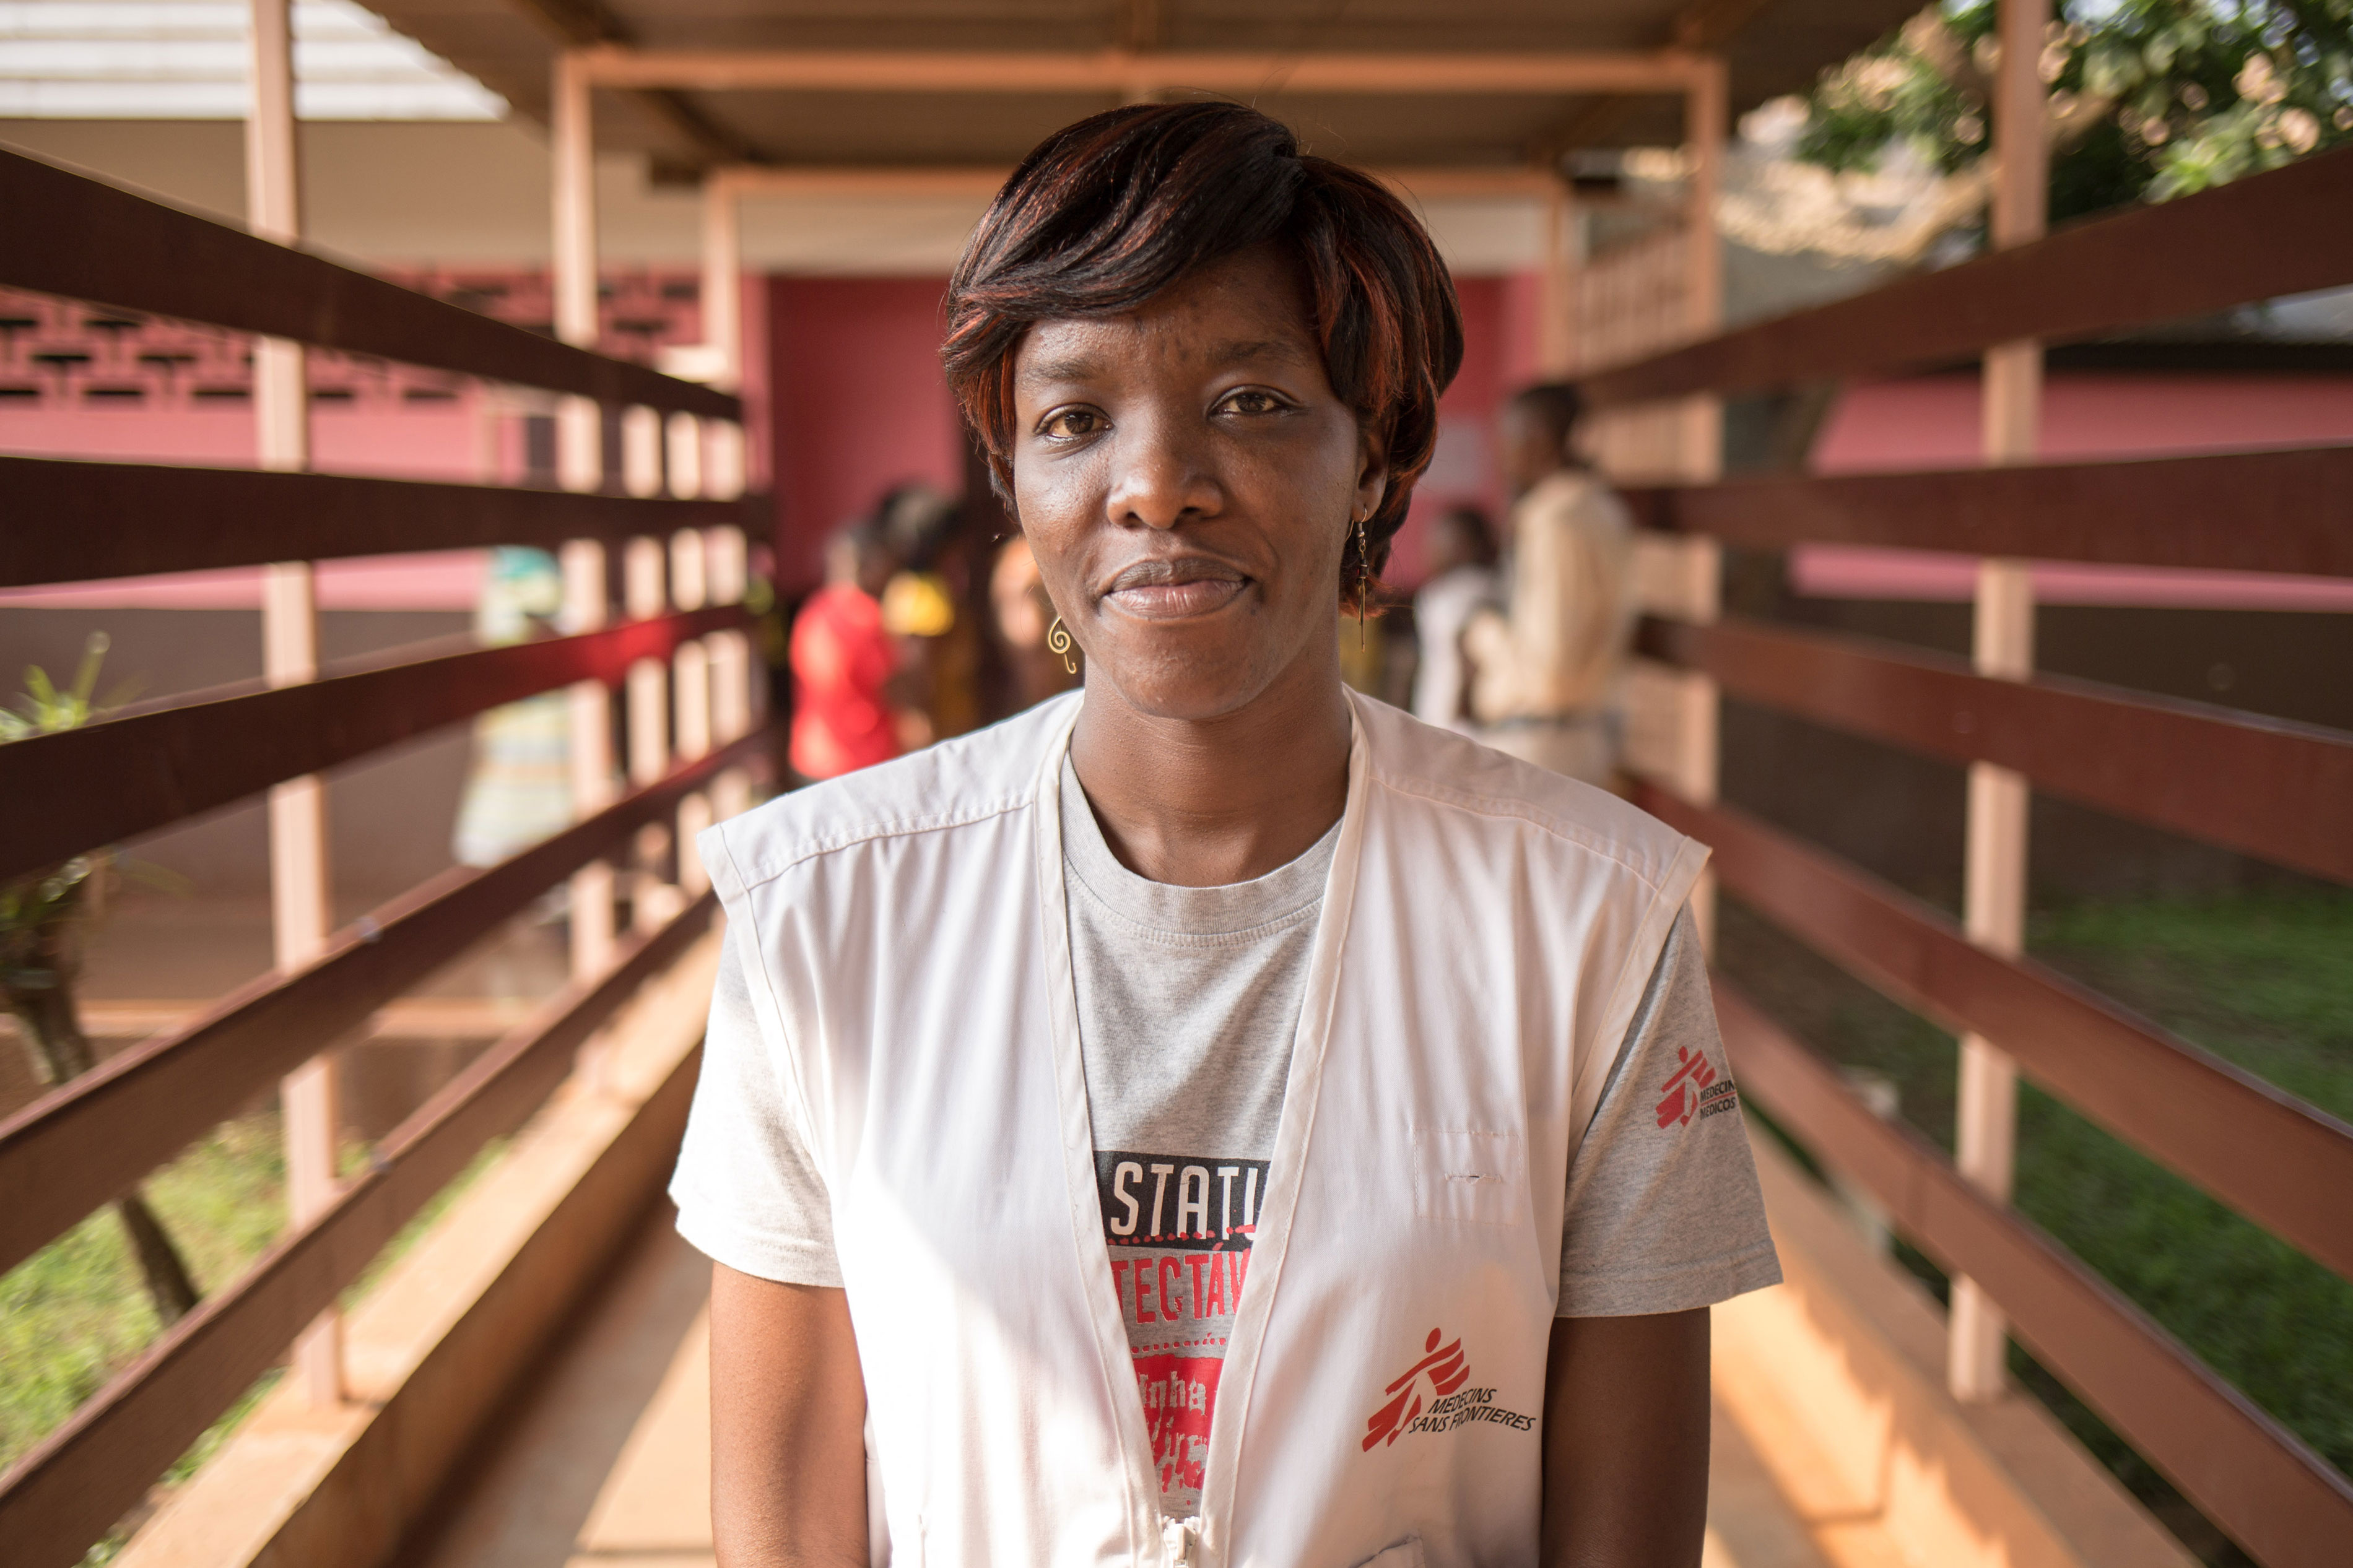 Dr. Christine BIMANSHA MBOMBO, MSF Medical Activity Manager of the HIV/AIDS program in the Hôpital communautaire of Bangui. 09 July 2016 - Hôpital communautaire, Bangui, Central African Republic.